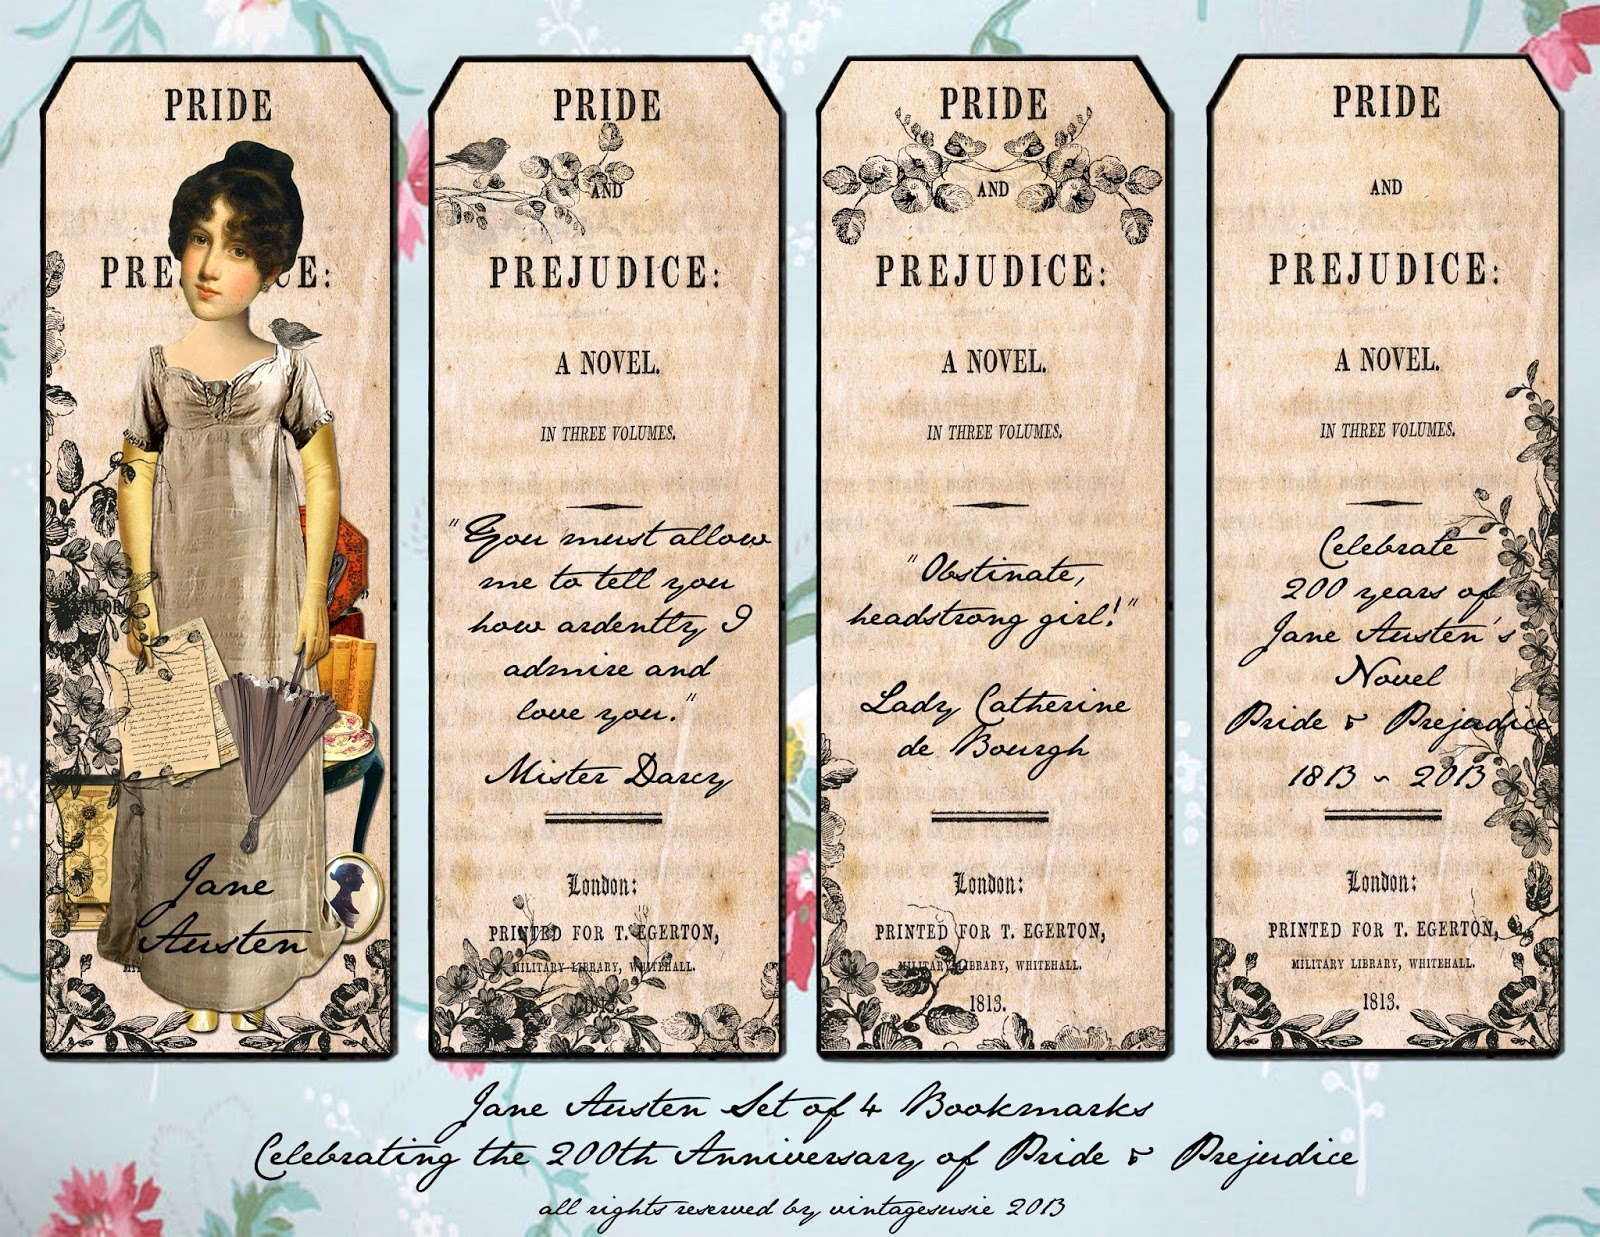 jane austen research paper Sense and sensibility by jane austen sense and sensibility by jane austen 1) what do we discover about marianne dashwood's sensibilities and her attraction to john willoughby in the following conversation with her sister elinor.